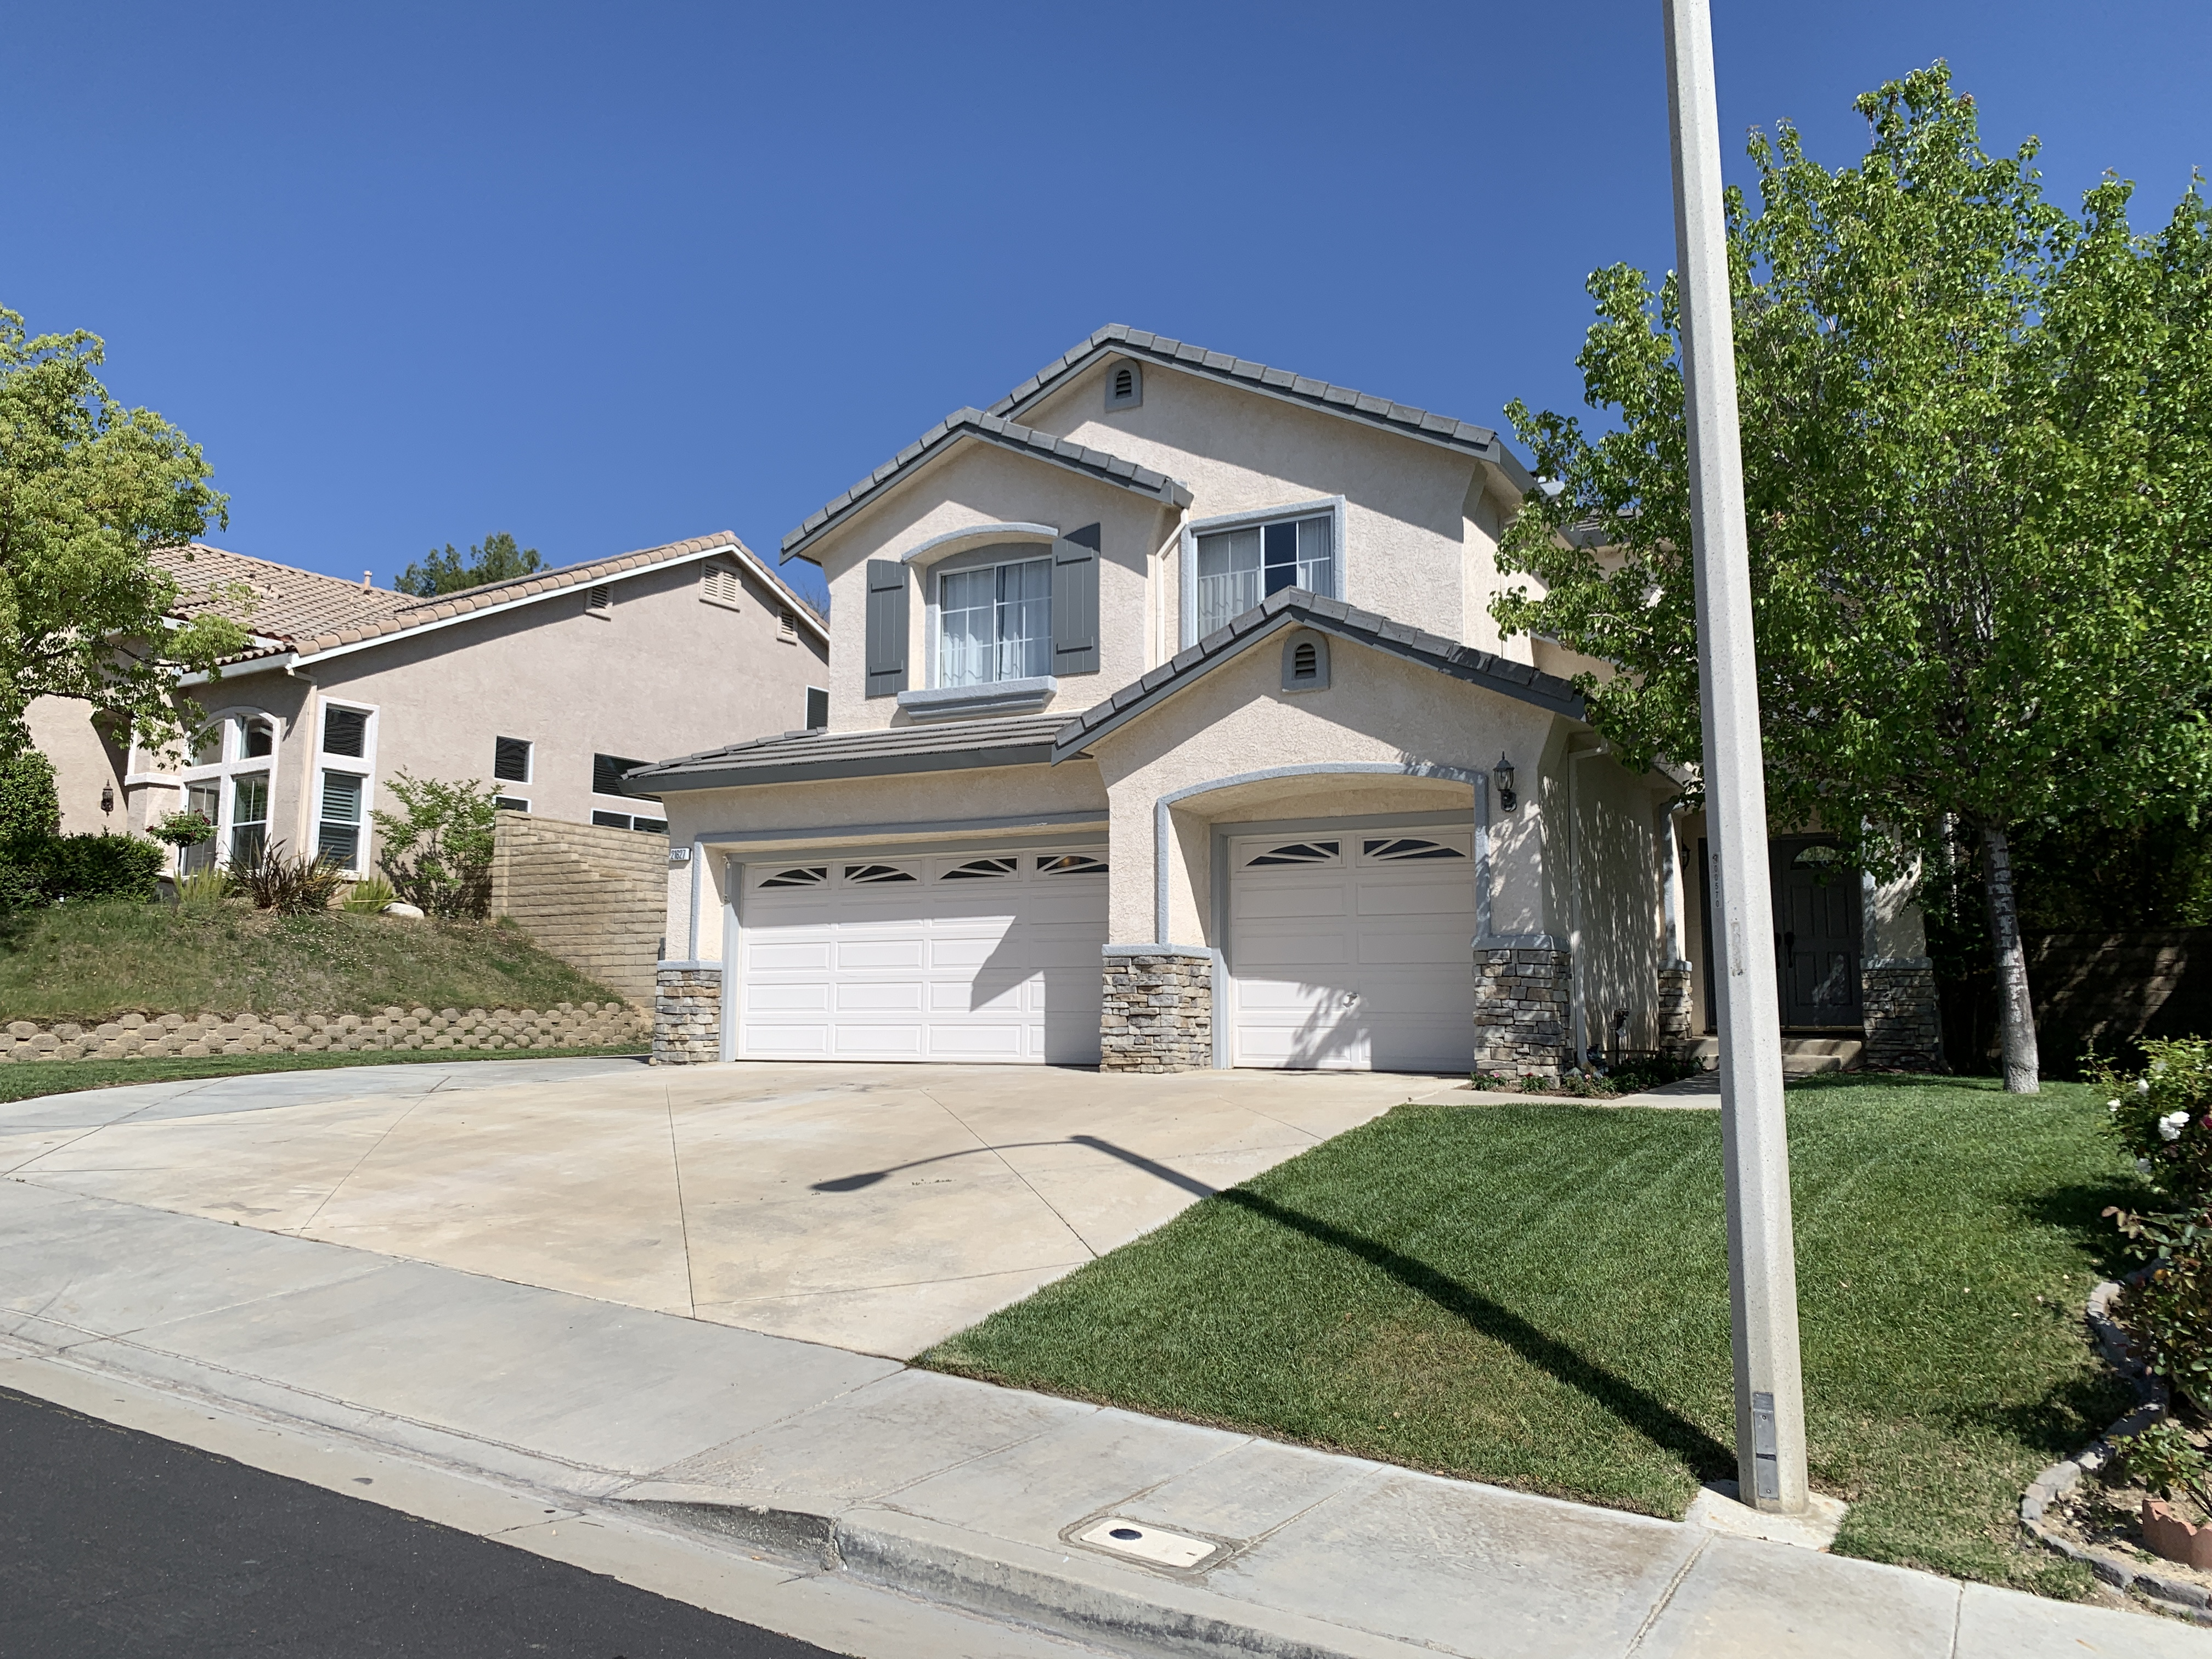 New Listing for sale 21627 Rose Canyon Lane, Saugus CA